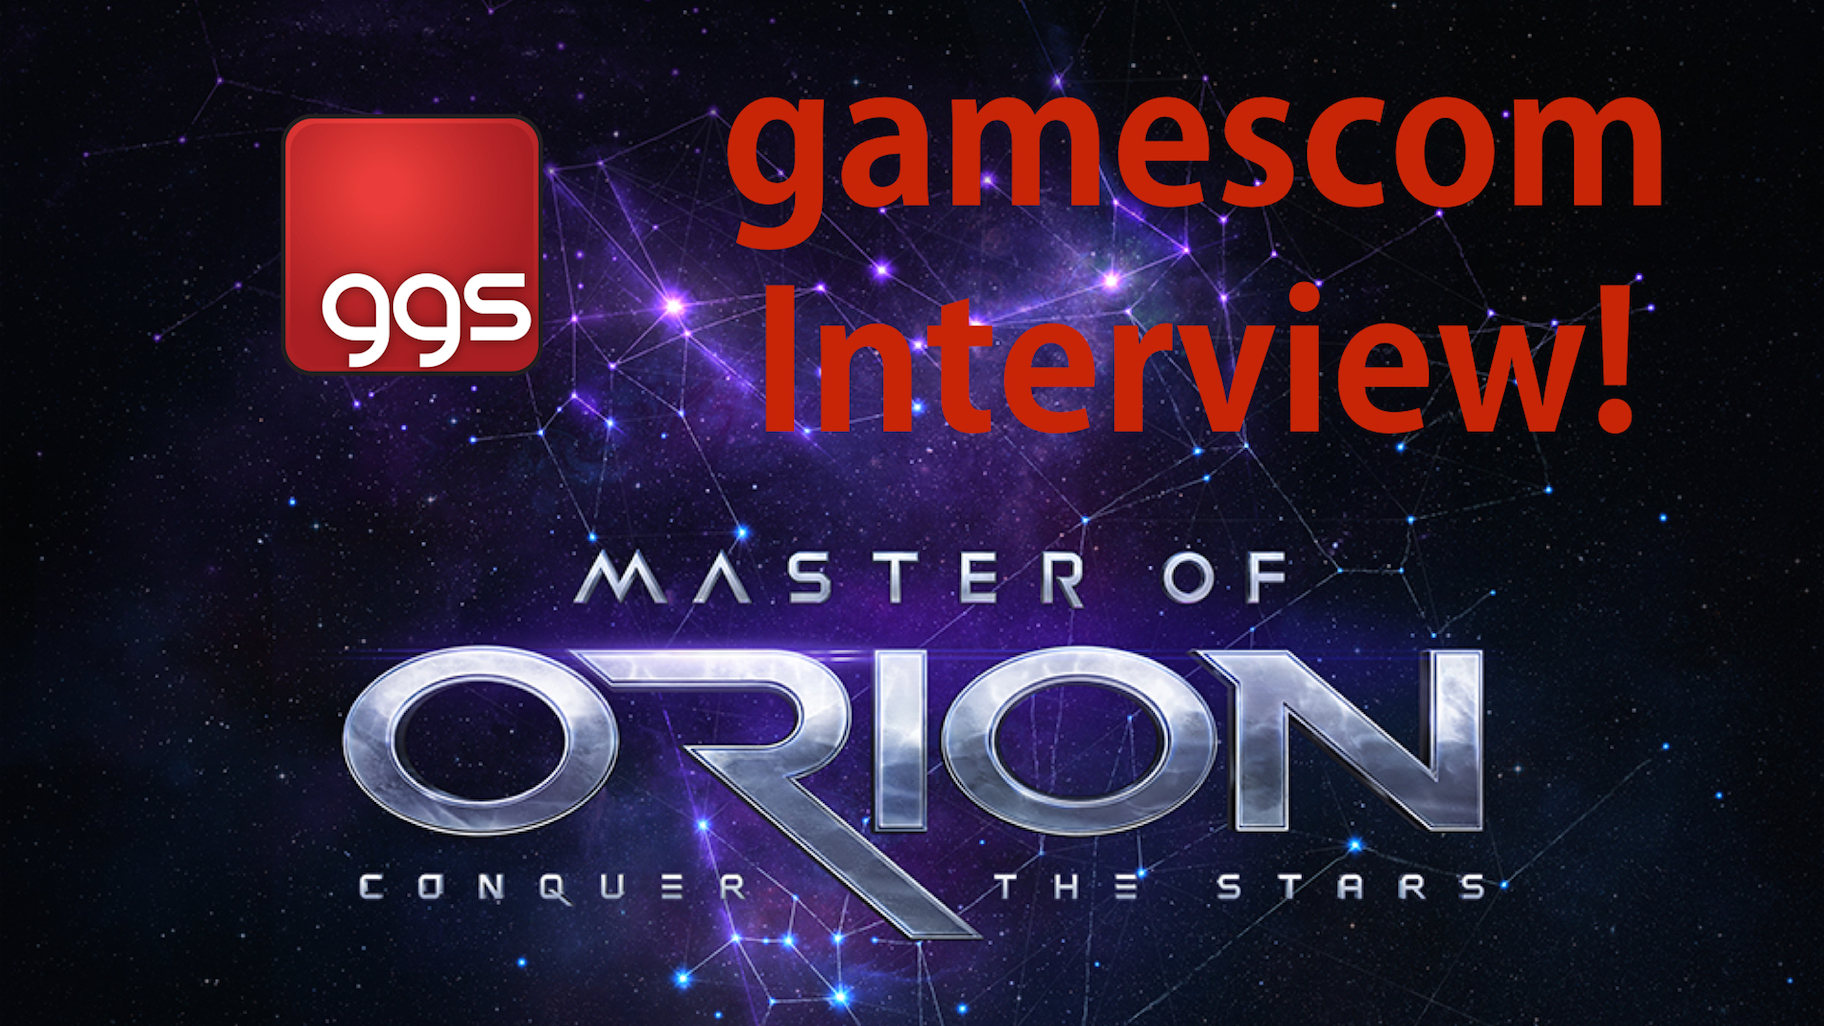 gamescom interview – Master of Orion